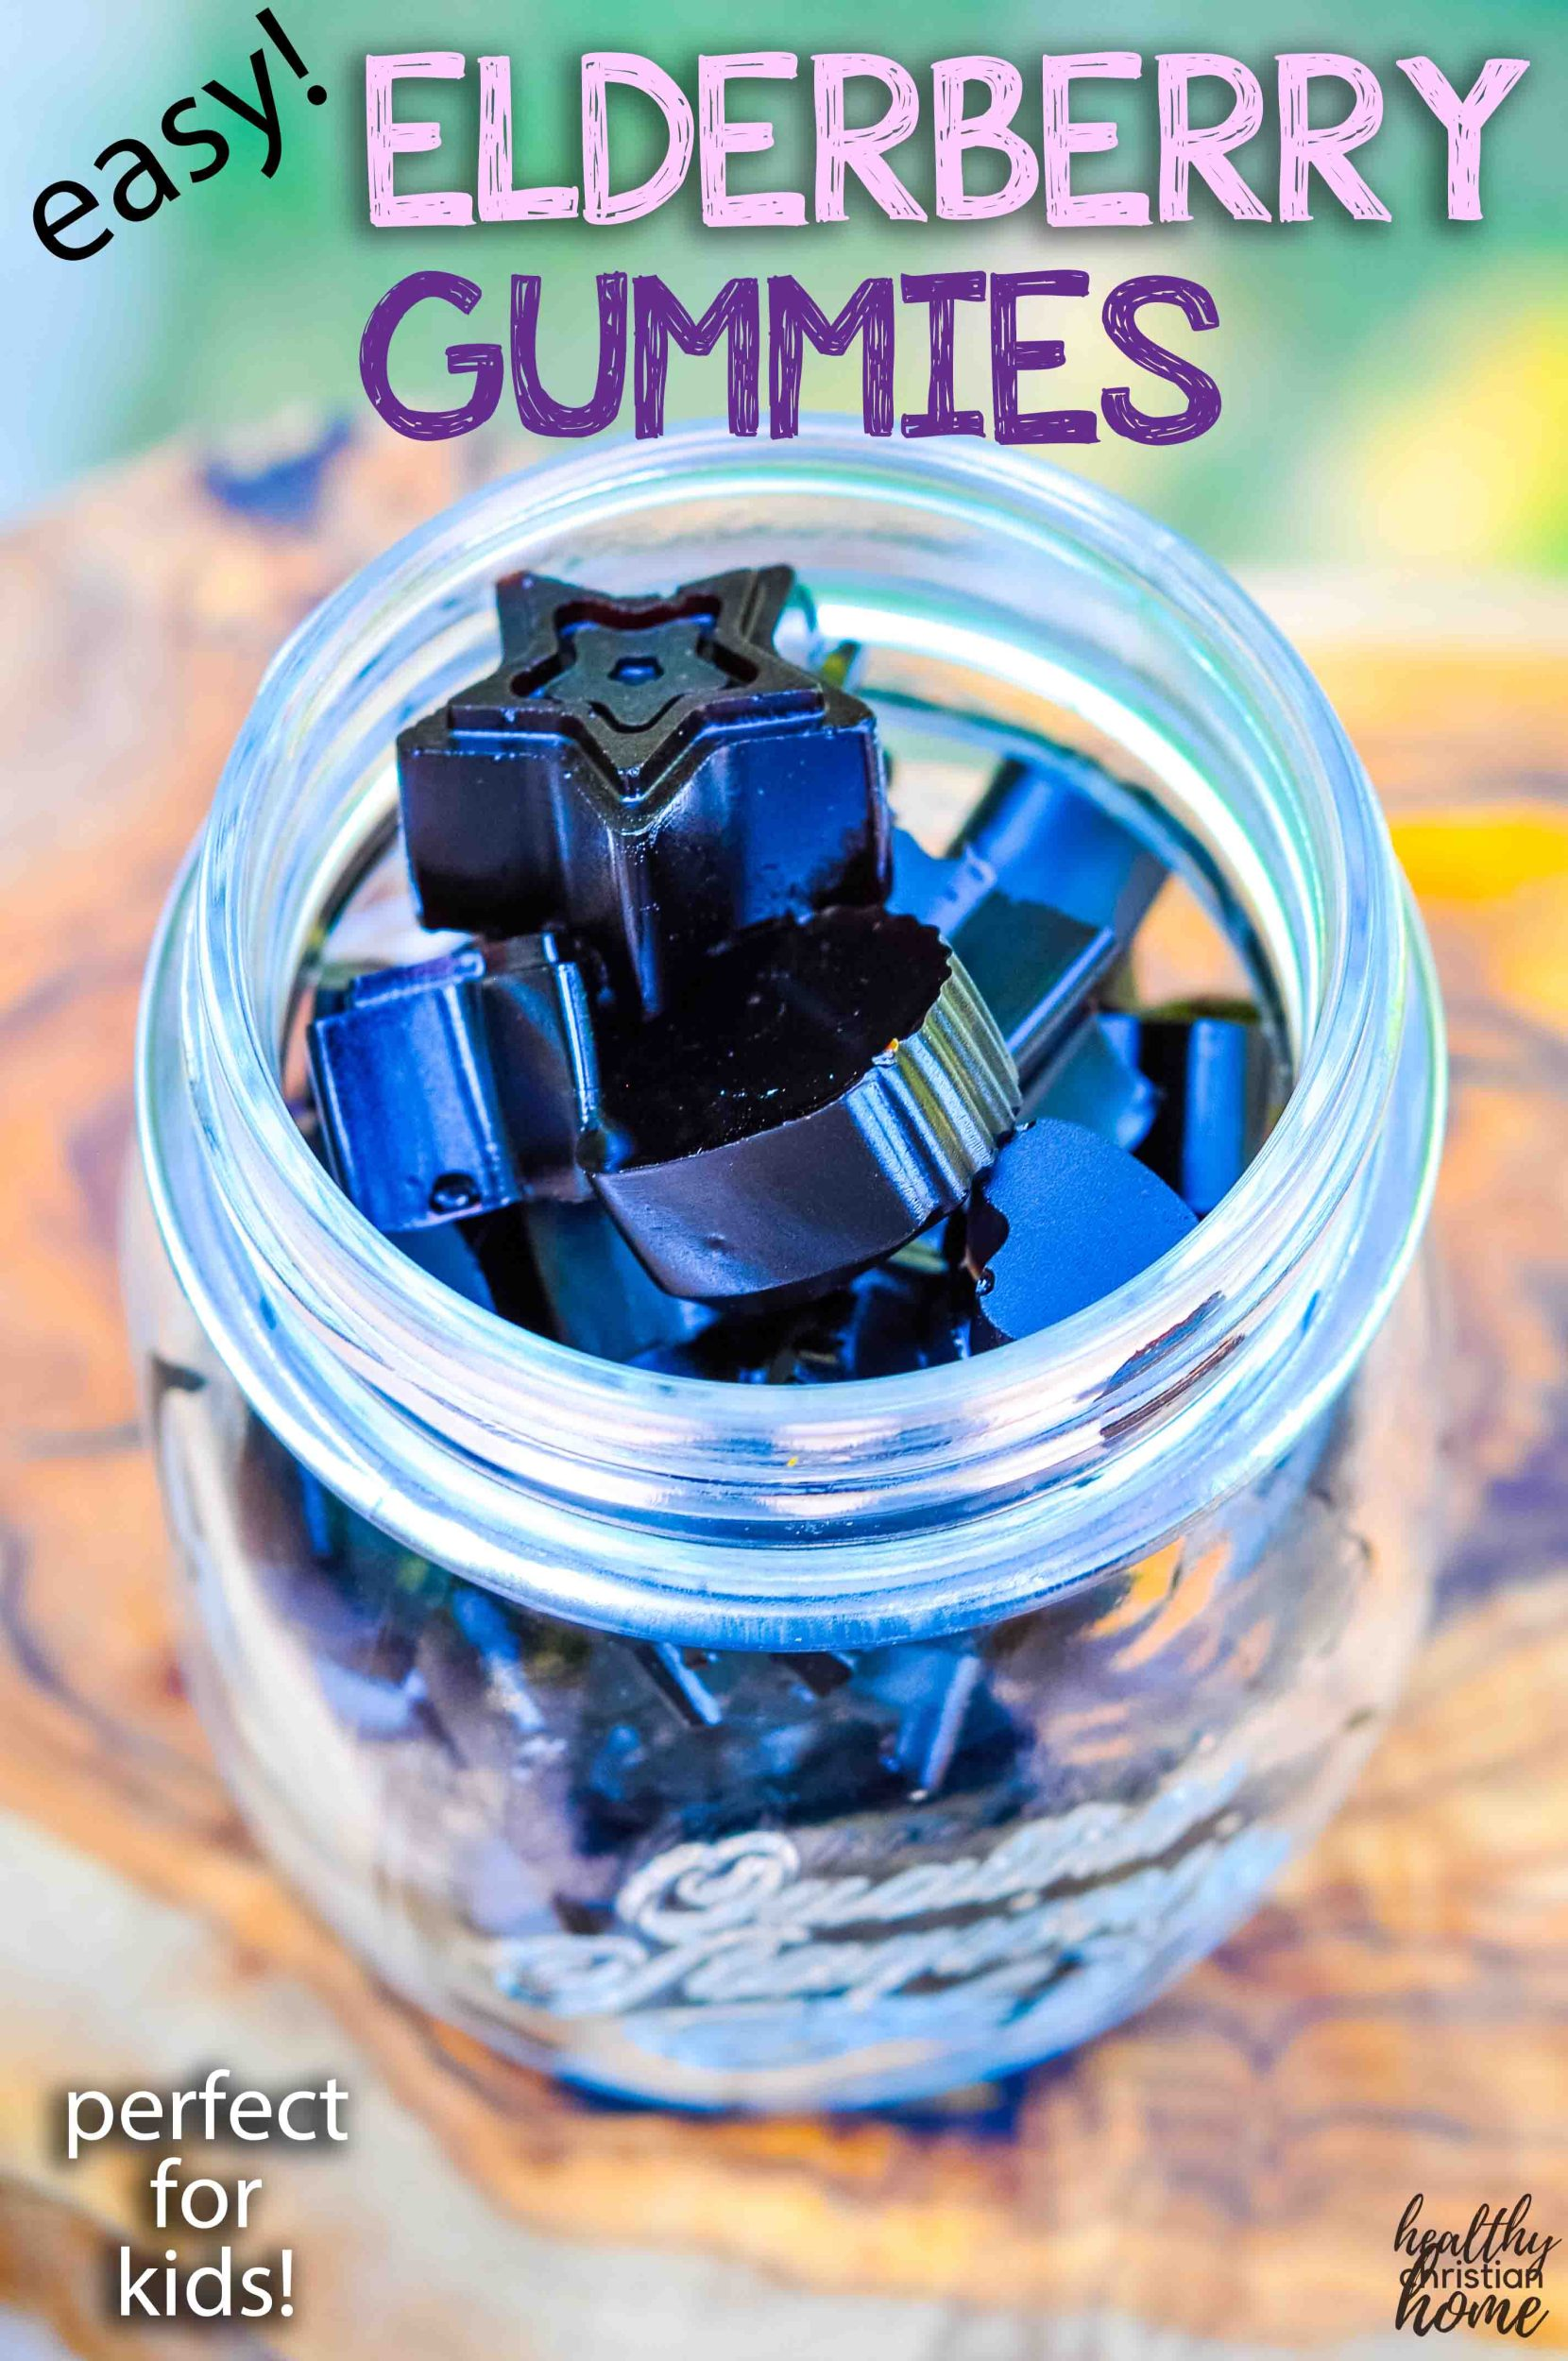 Elderberry gummies in a small jar with text overlay.